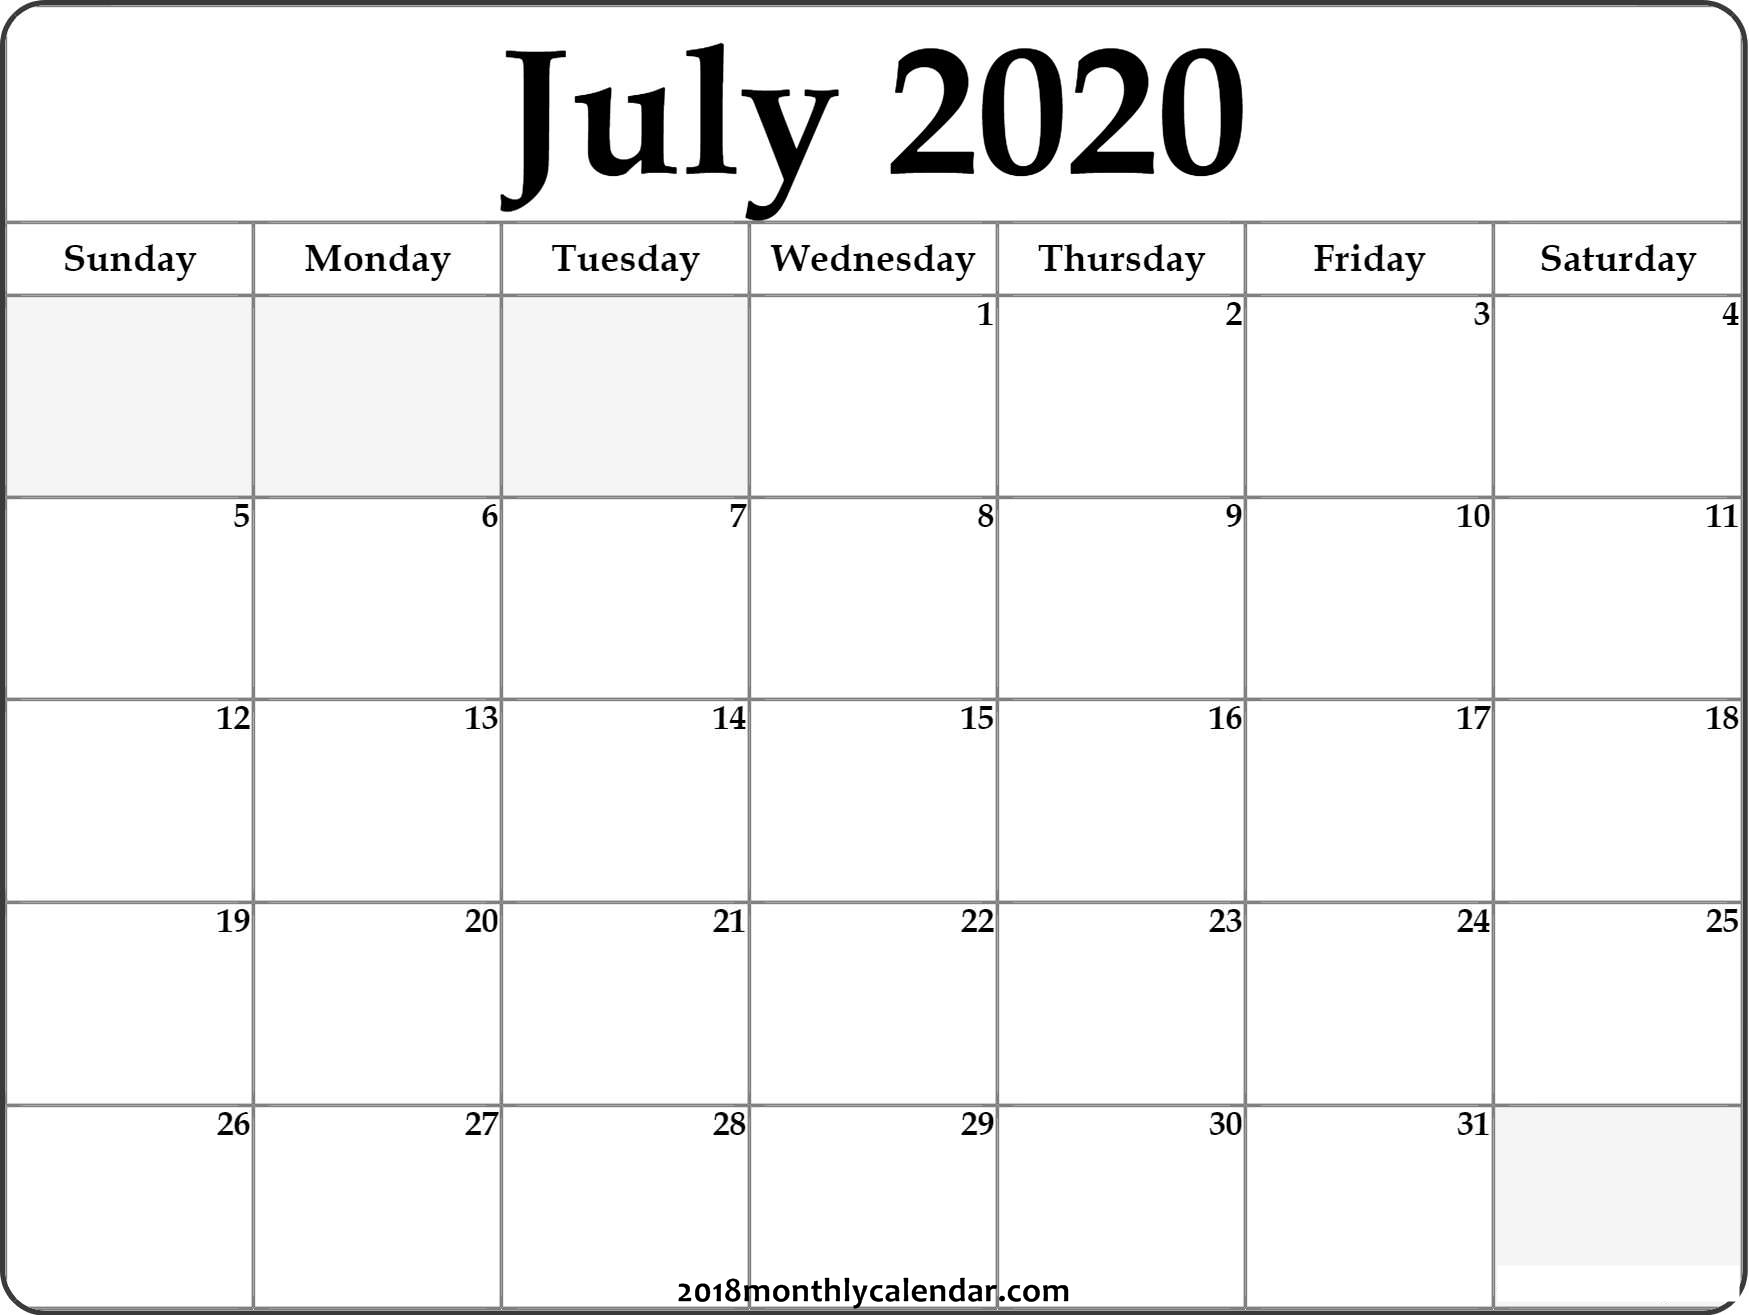 Printable Calendar For July 2020 - Horizonconsulting.co